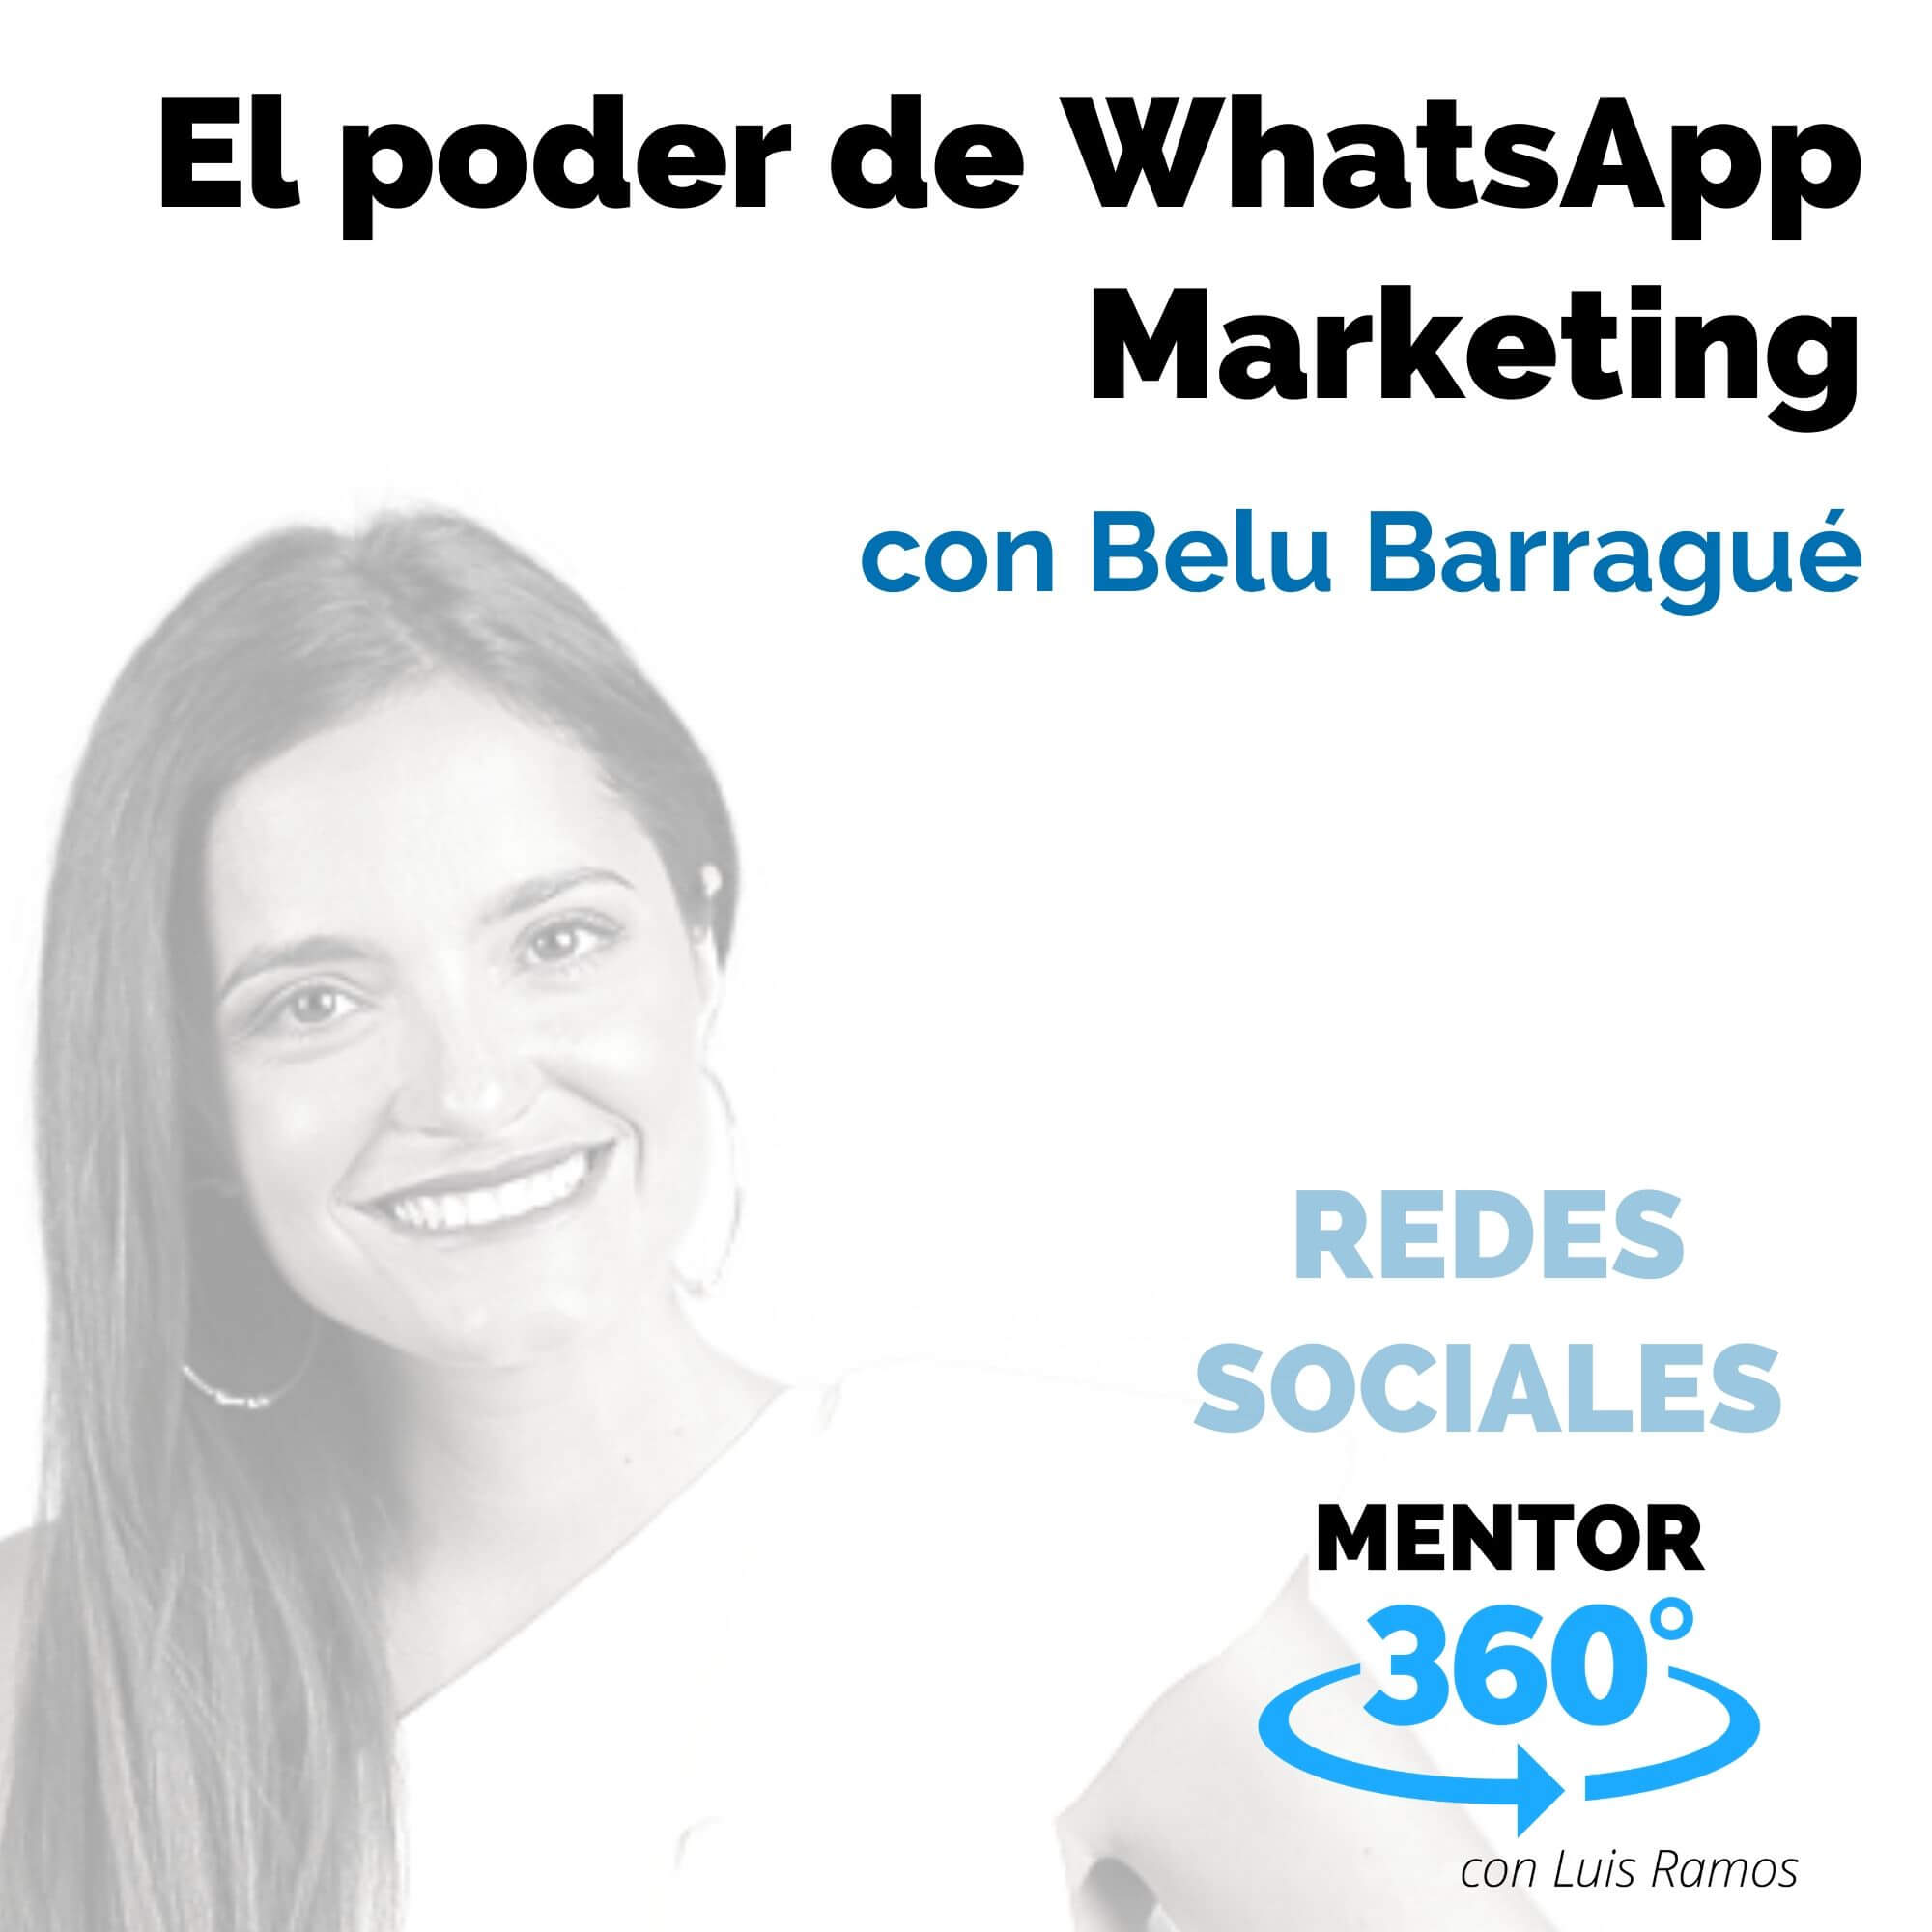 El poder de WhatsApp Marketing, con Belu Barragué - REDES SOCIALES - MENTOR360